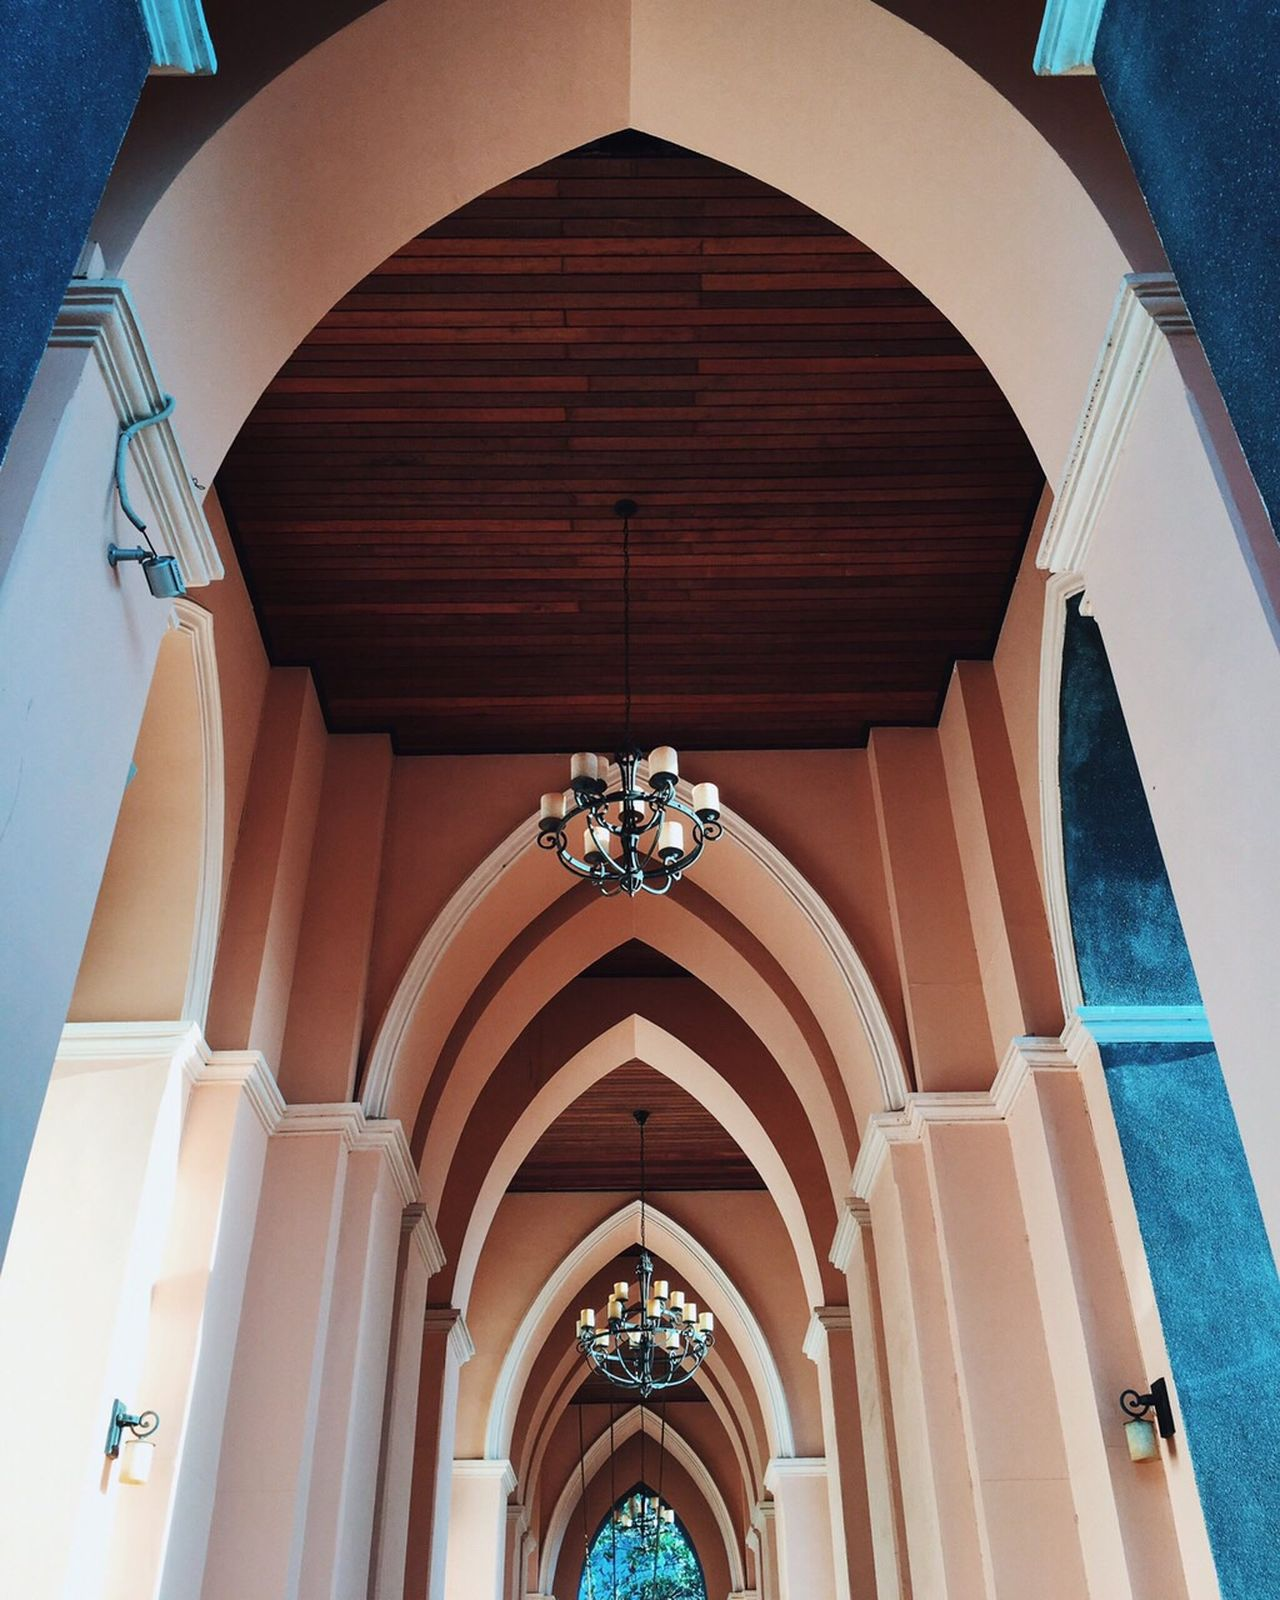 Church Churches LPhoneography Photo Photography Taking Photos IPhoneography Art IPhone Traveling Chanthaburi Thai Thailand Iphone6s